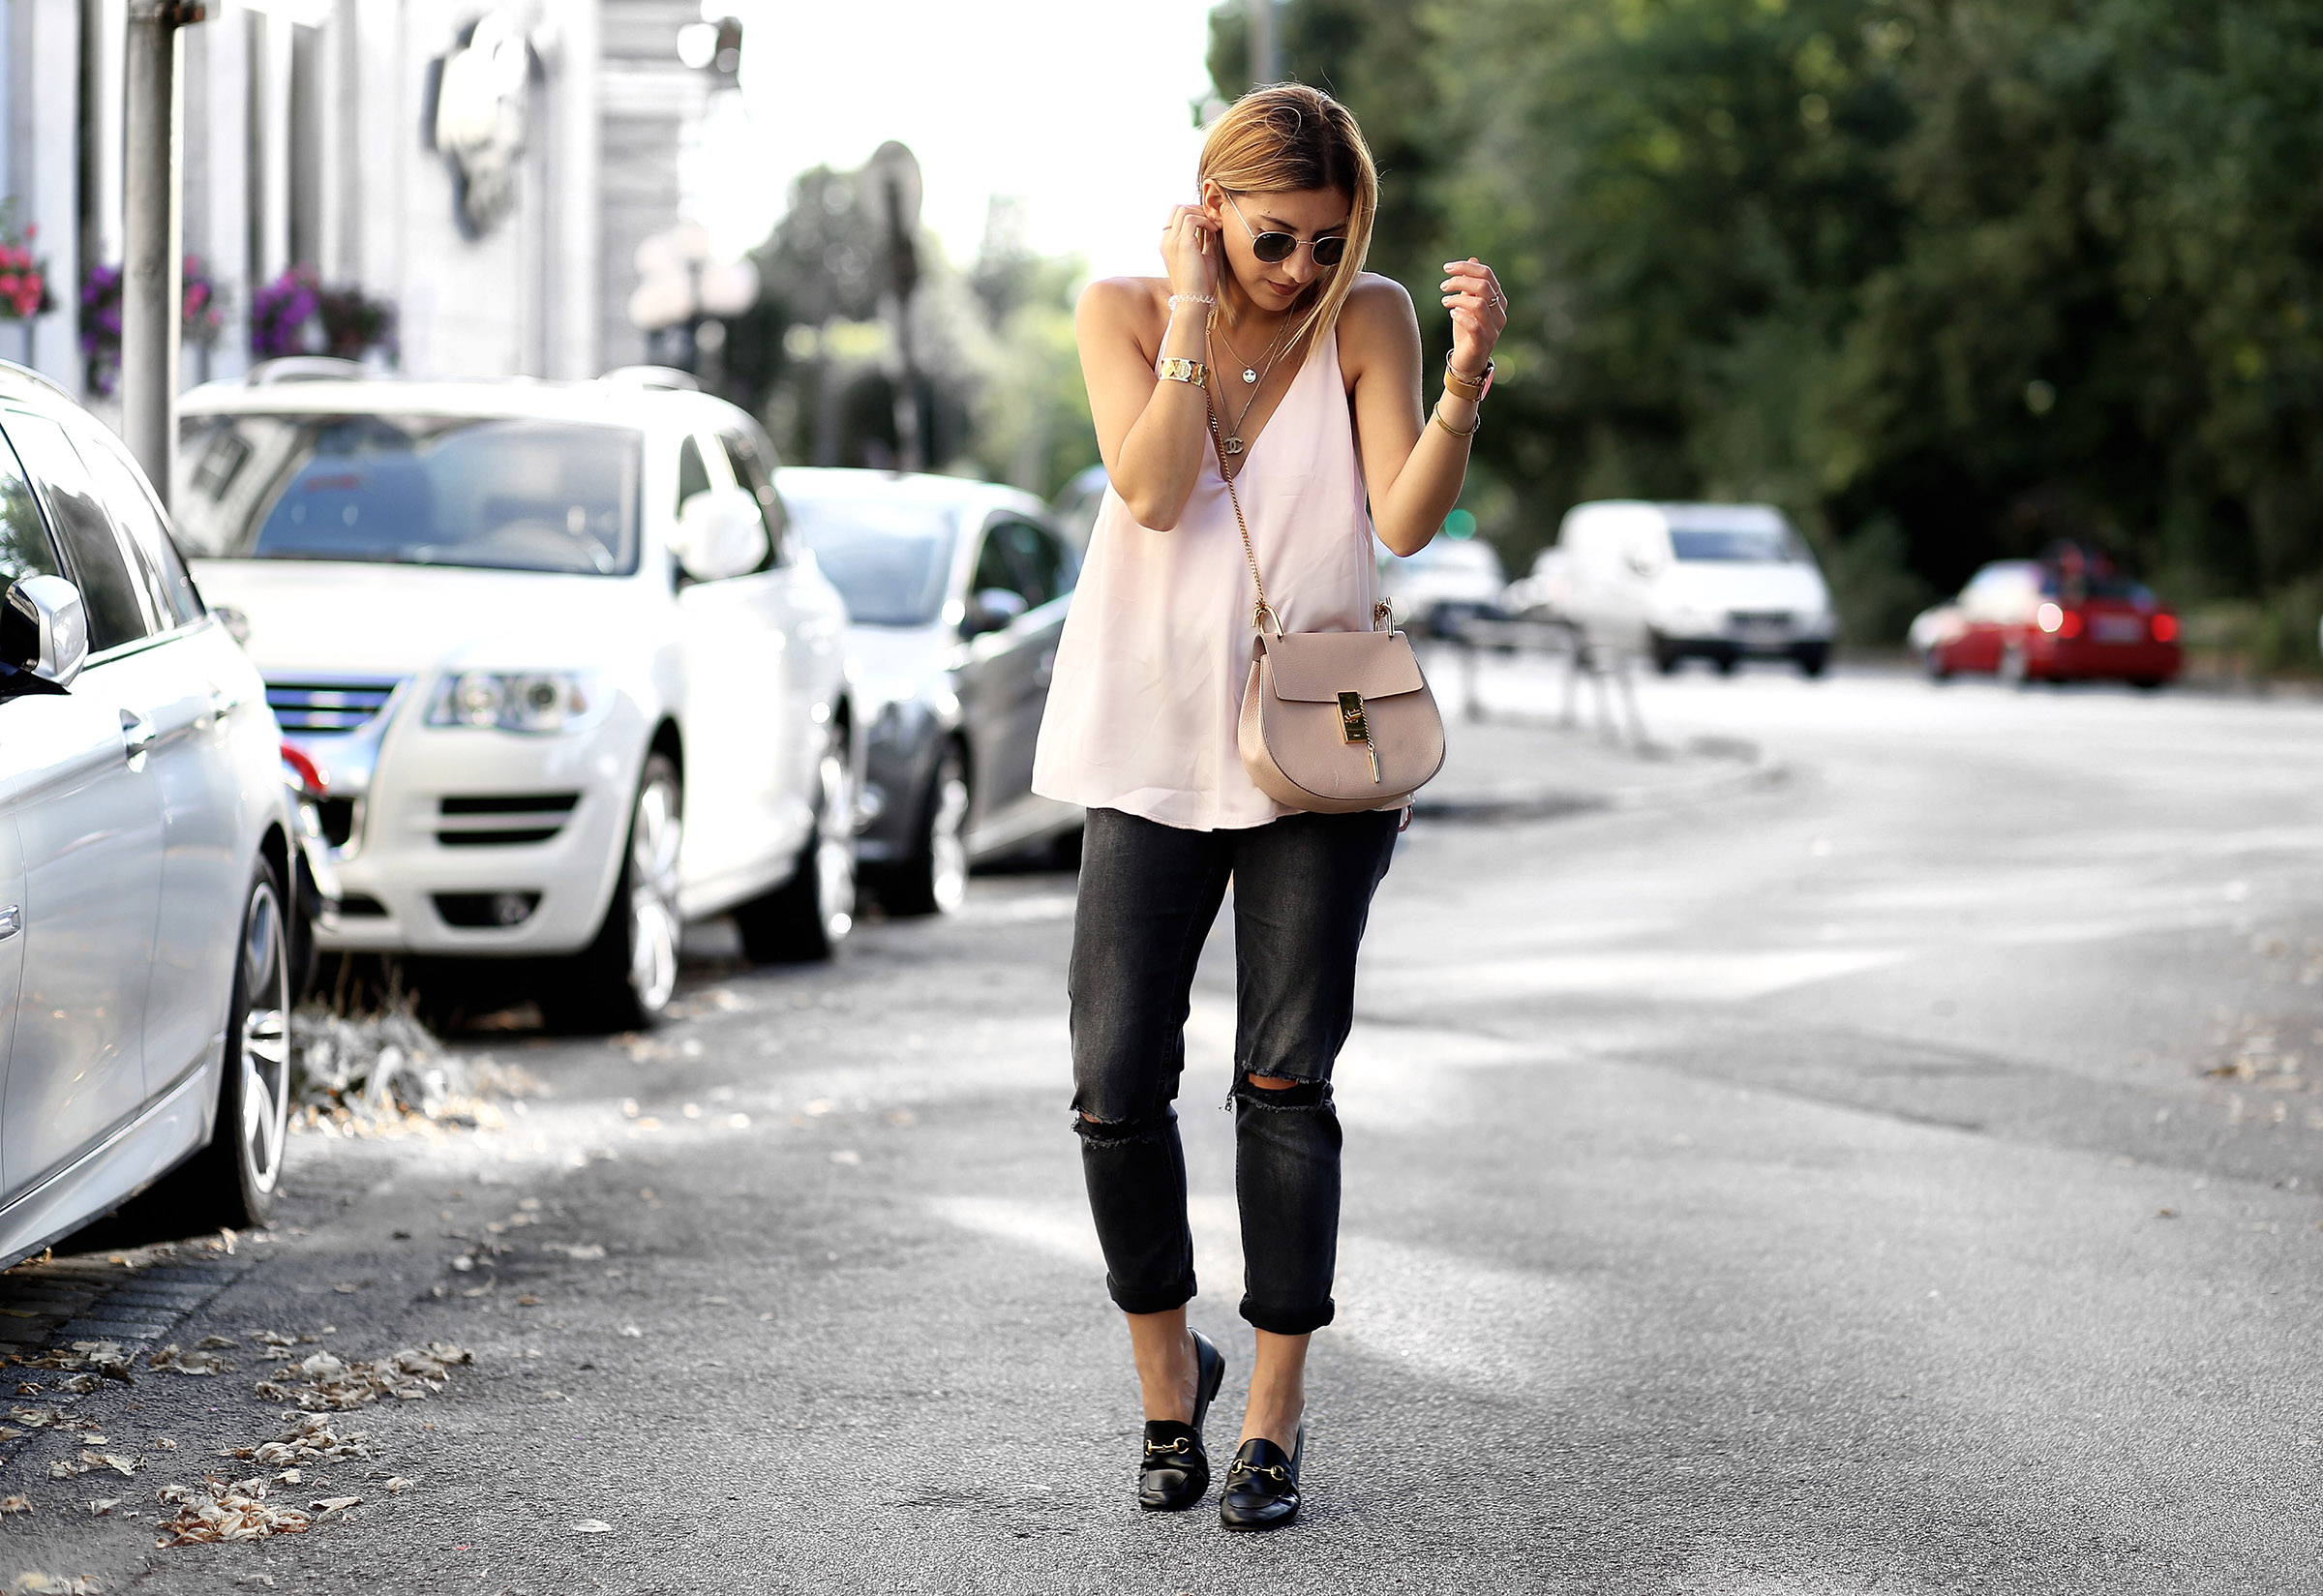 ... fashion-blog-aylin-koenig ...